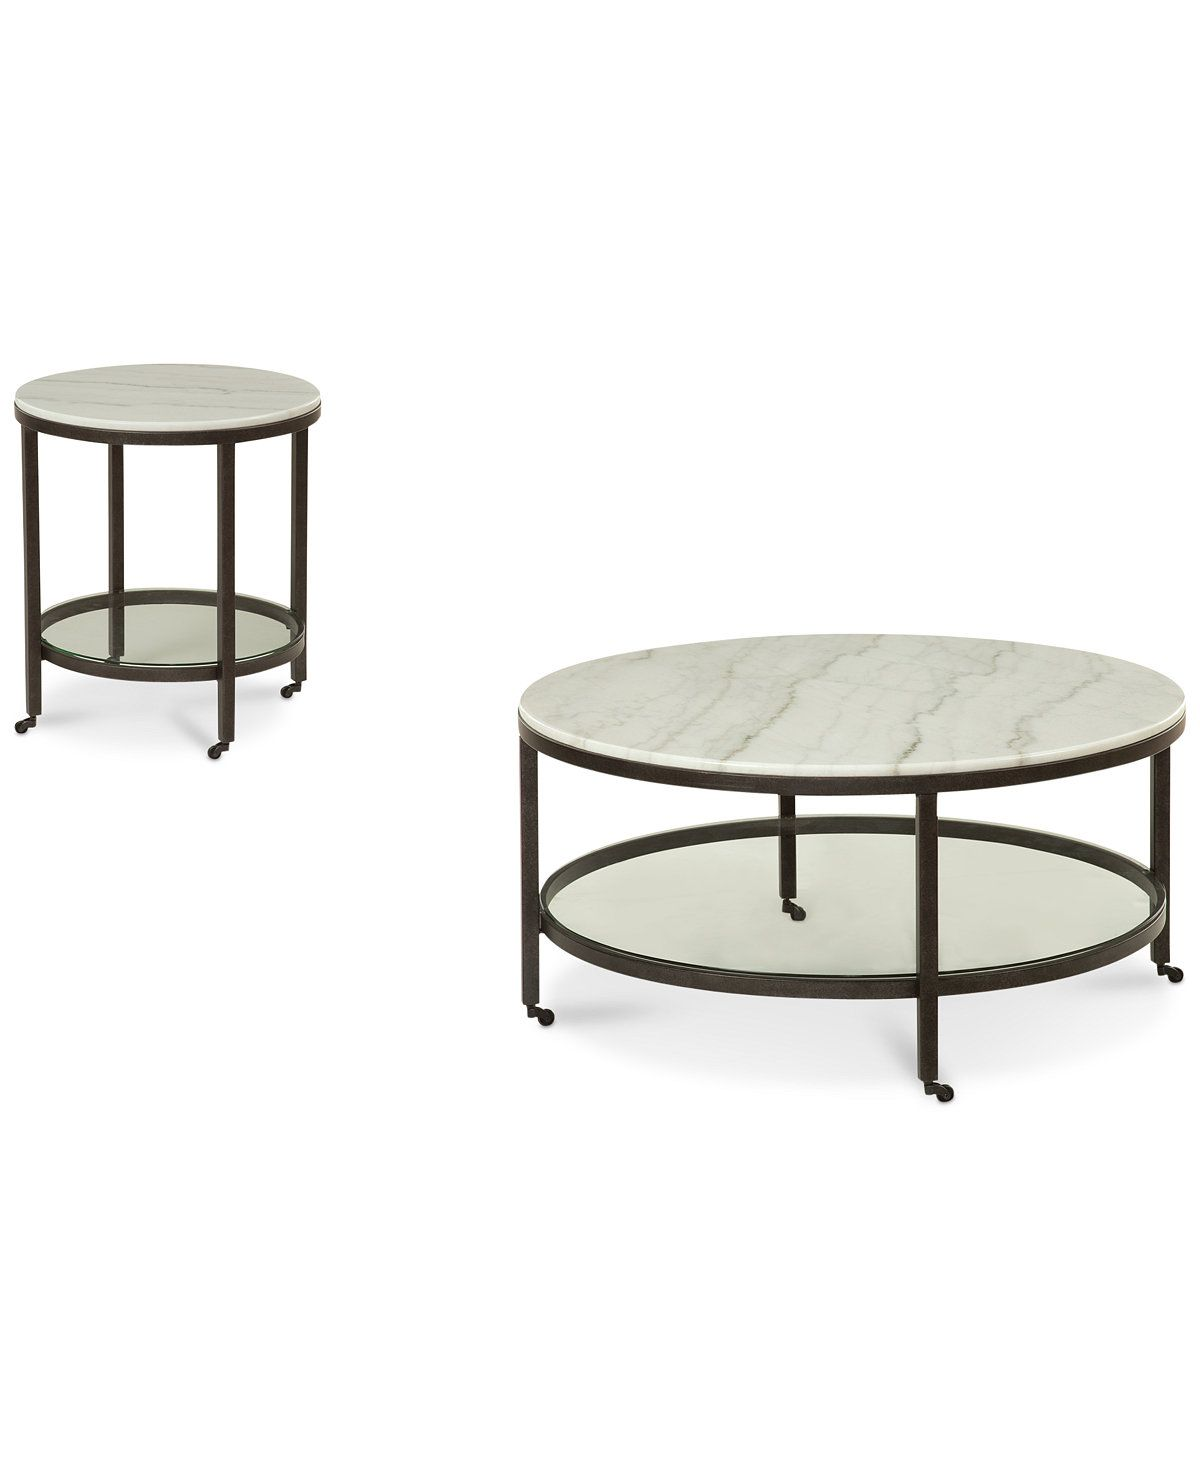 Living Room Coffee End Tables Macy S Stratus Round 2 Pc Set Coffee End Table 1 798 00 Coffee Table Furniture Marble Top Coffee Table [ 1467 x 1200 Pixel ]